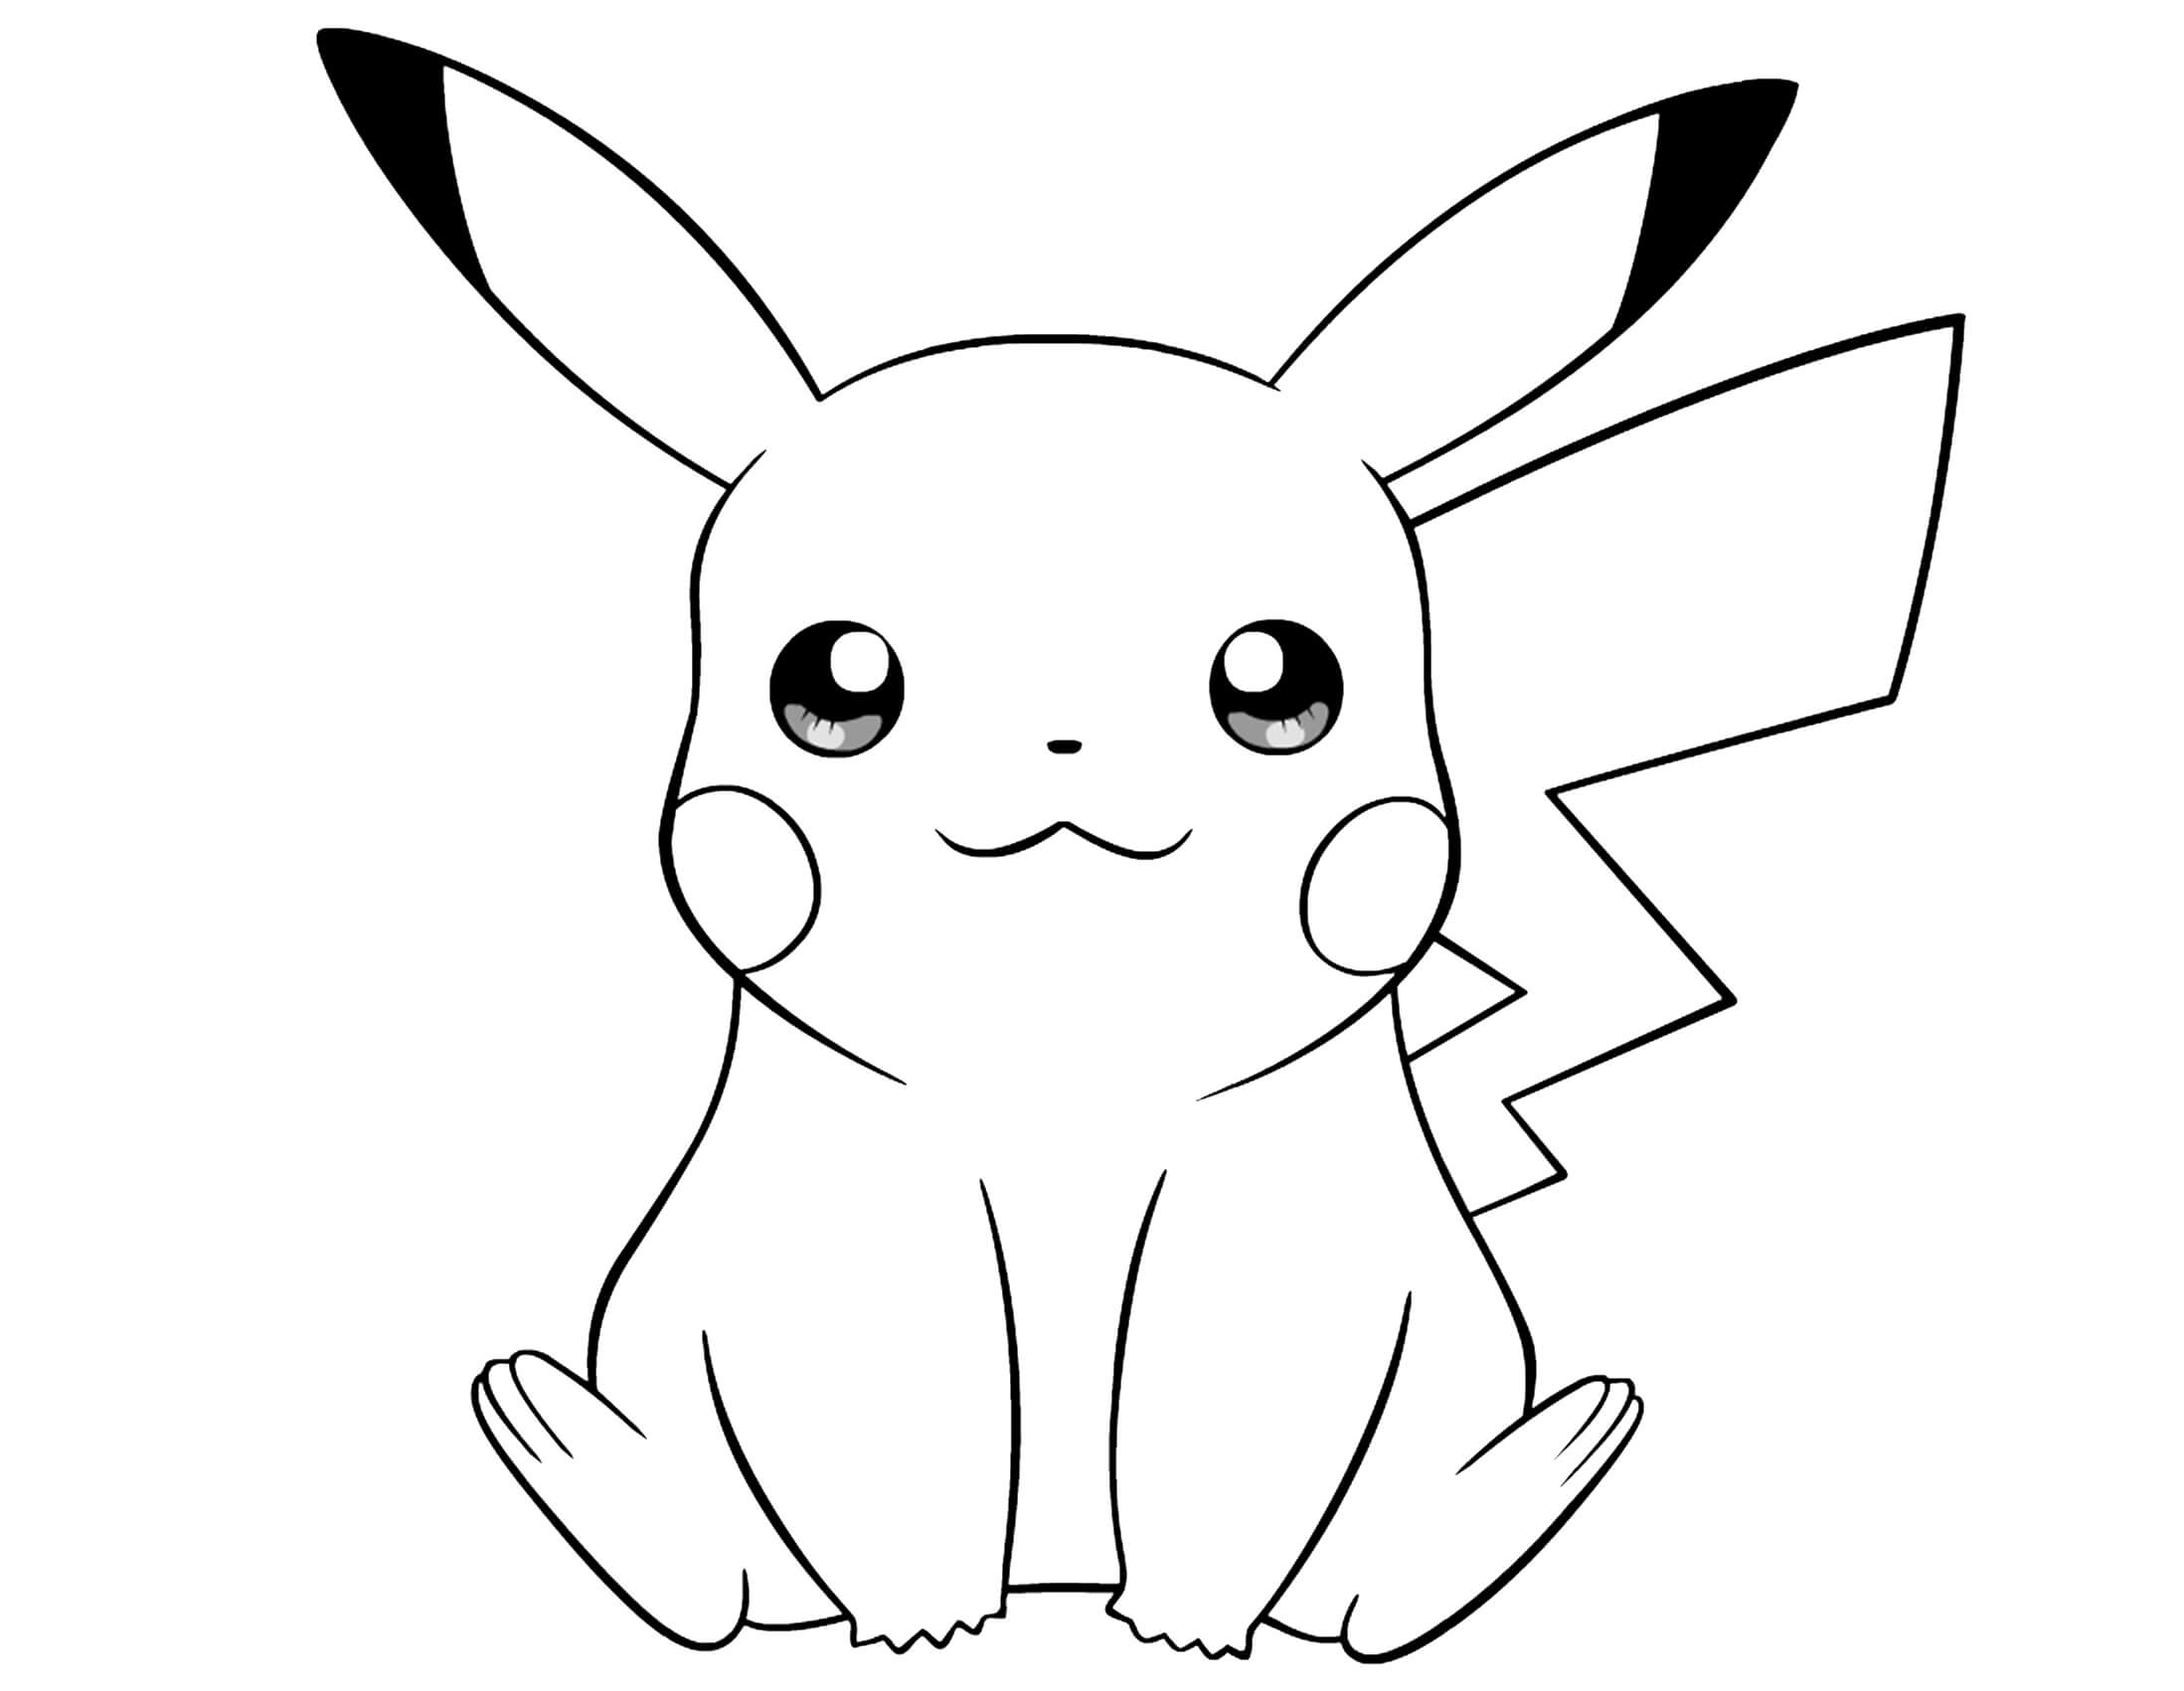 pikachu coloring book page pikachu coloring pages to download and print for free pikachu book page coloring